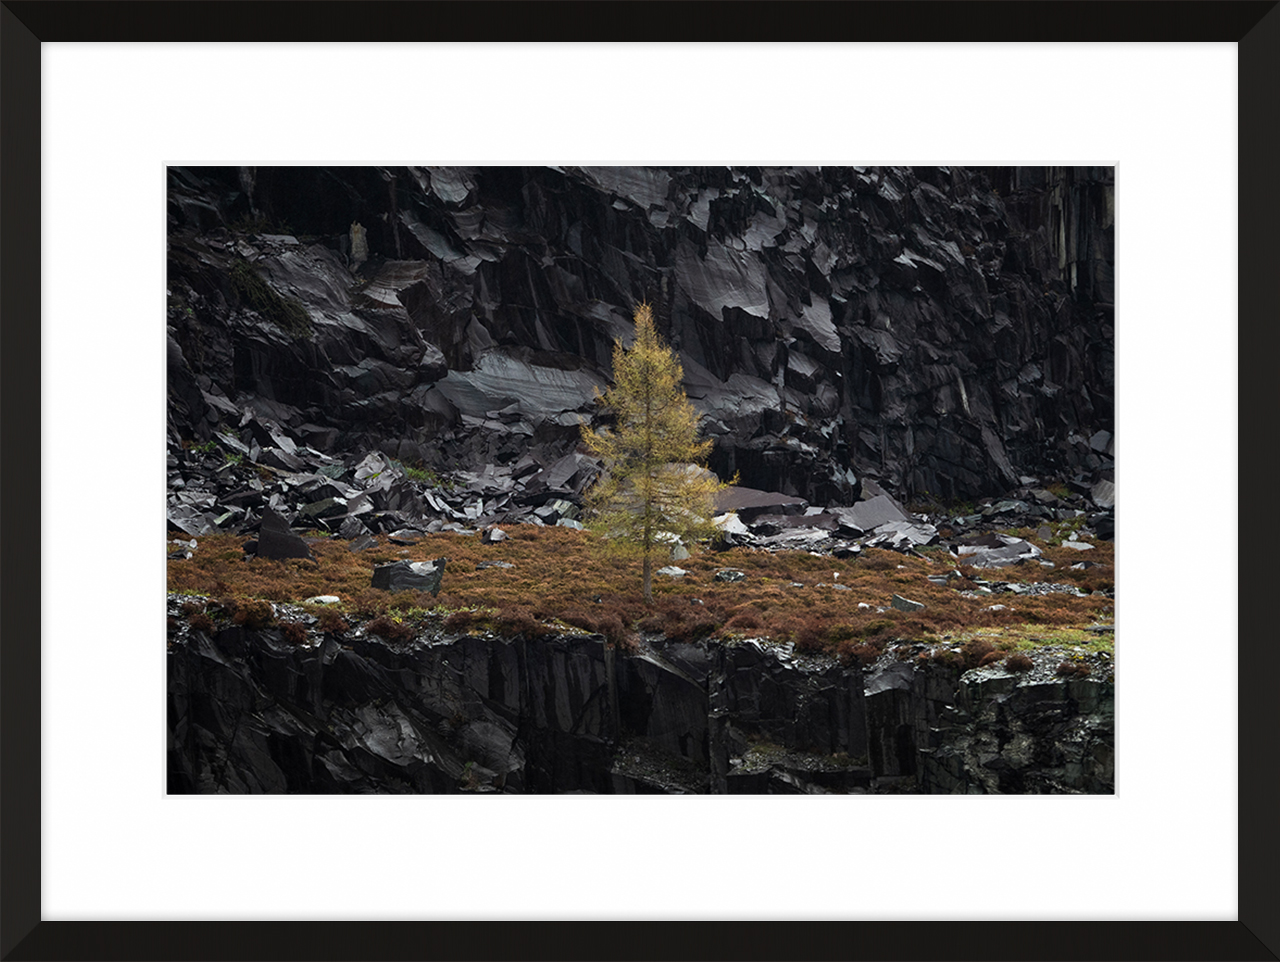 Alone on Dinorwic - A lone tree found on one of the many layers across the quarry of Dinorwic, Llanberis, Wales. The tree is unreachable by foot and can only be seen from a distance as it stands alone on its own level.Prints are available from Treacle Gallery in 4 different size options and frame colour options to match your interior perfectly. Bespoke sizes and framing options available contact us for more information.